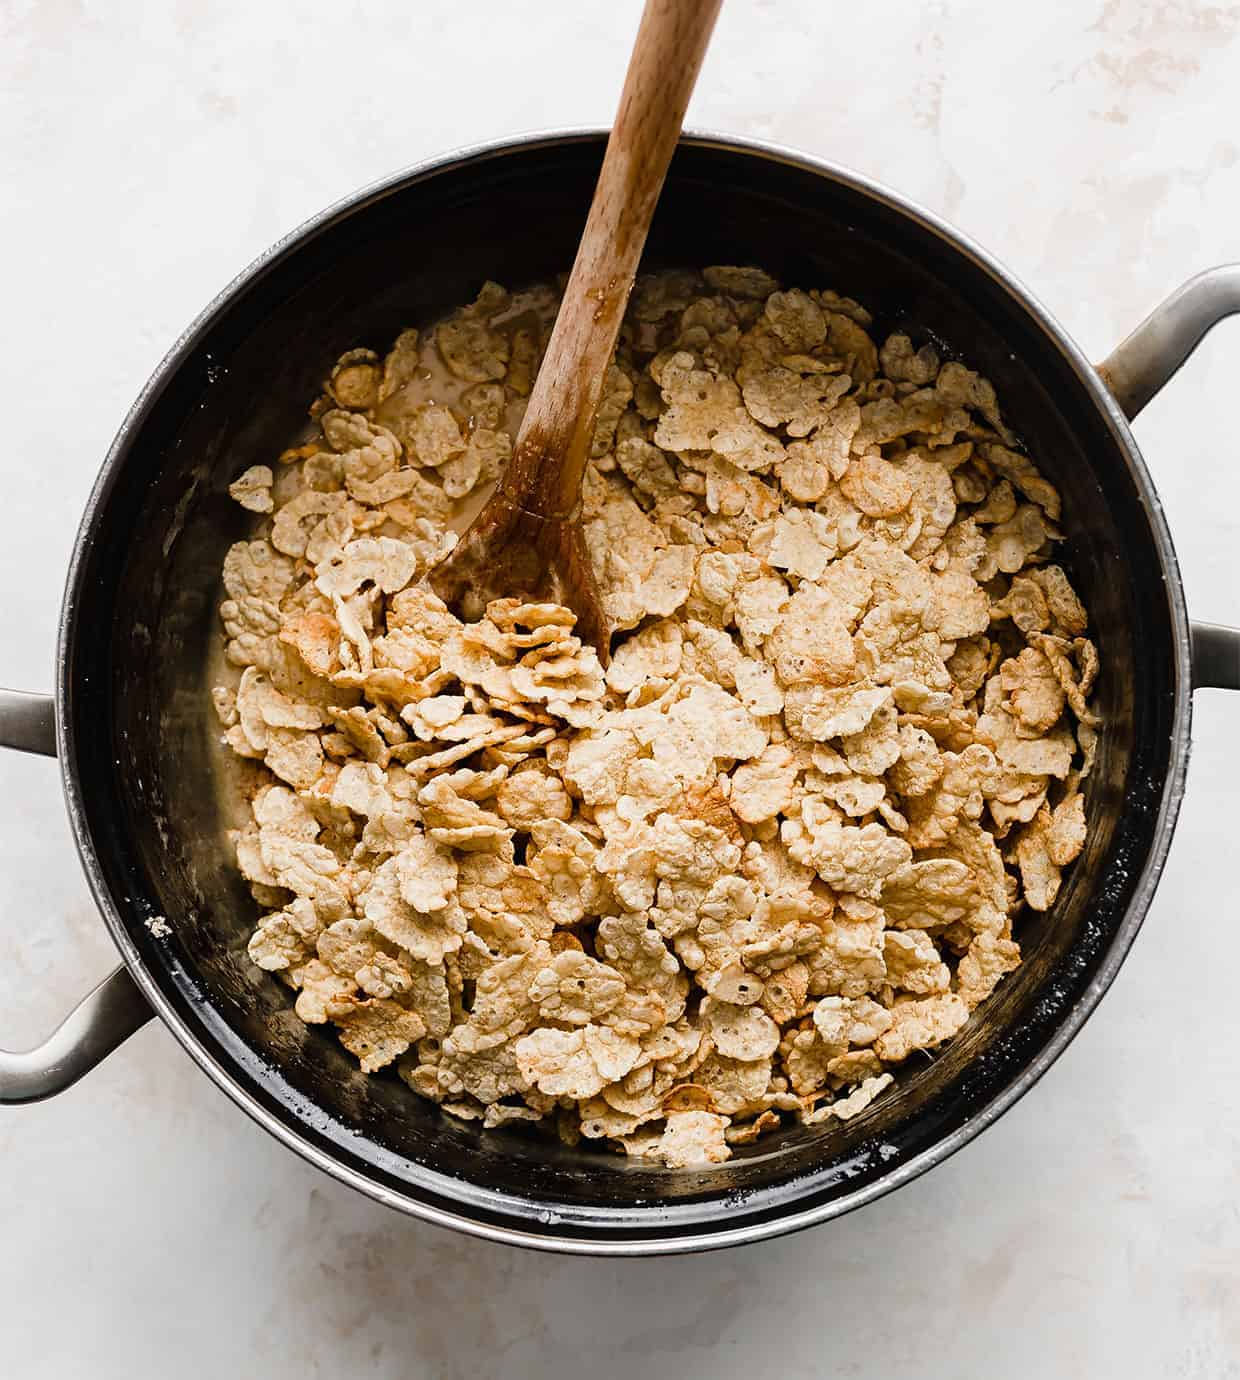 A pot full of Special K cereal.